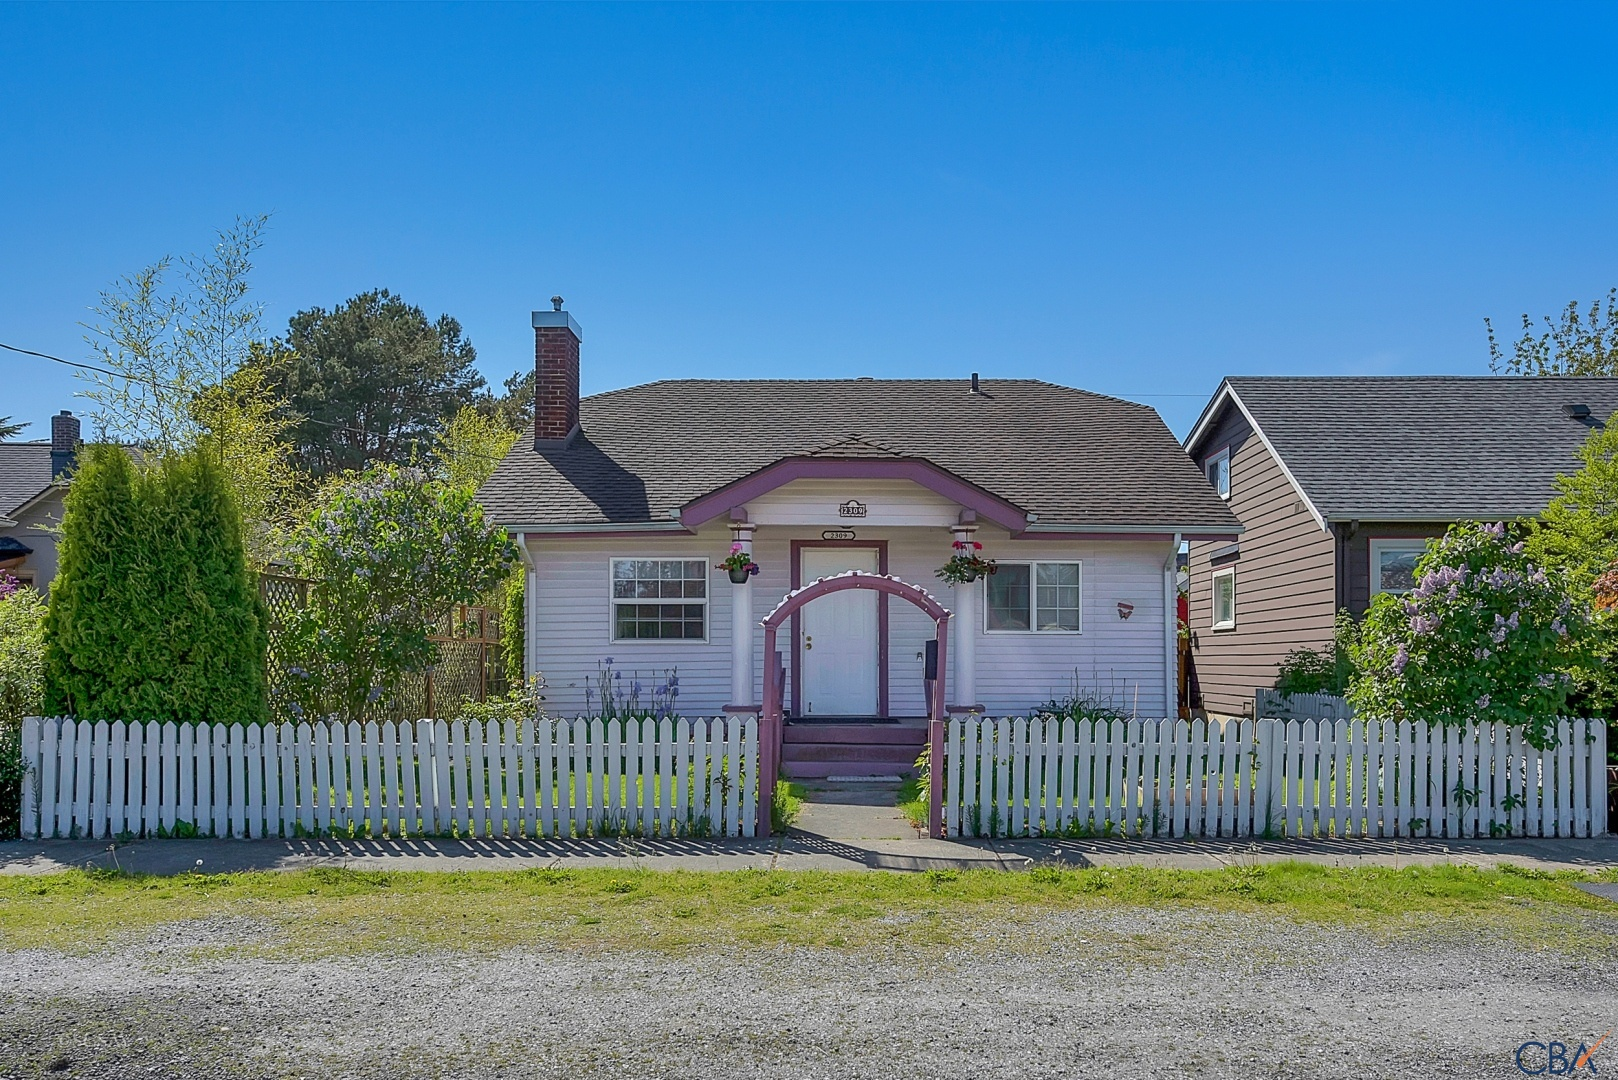 Primary Listing Image for MLS#: 599187